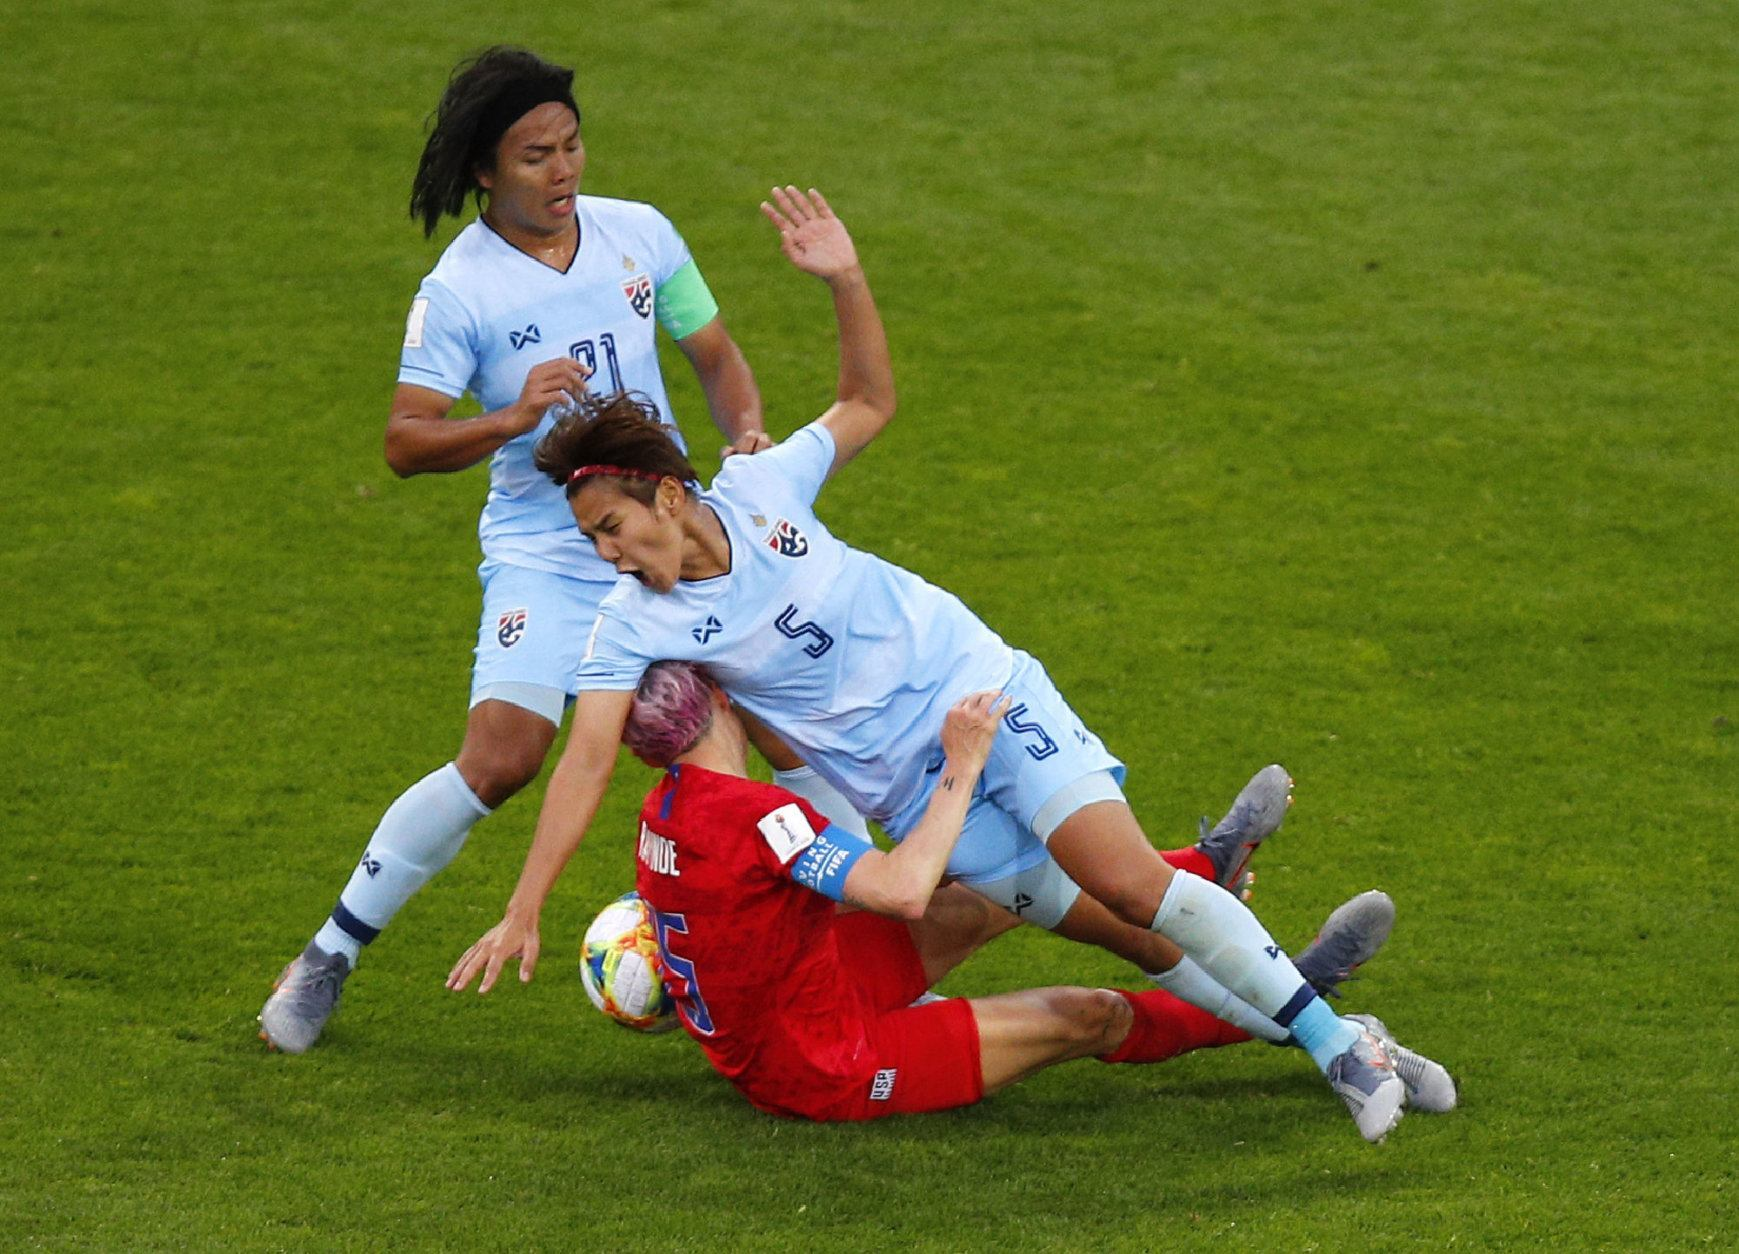 United States' Megan Rapinoe, centre, collides with Thailand's Ainon Phancha, right, as Kanjana Sung-Ngoen, left, watches during the Women's World Cup Group F soccer match between the United States and Thailand at the Stade Auguste-Delaune in Reims, France, Tuesday, June 11, 2019. (AP Photo/Francois Mori)